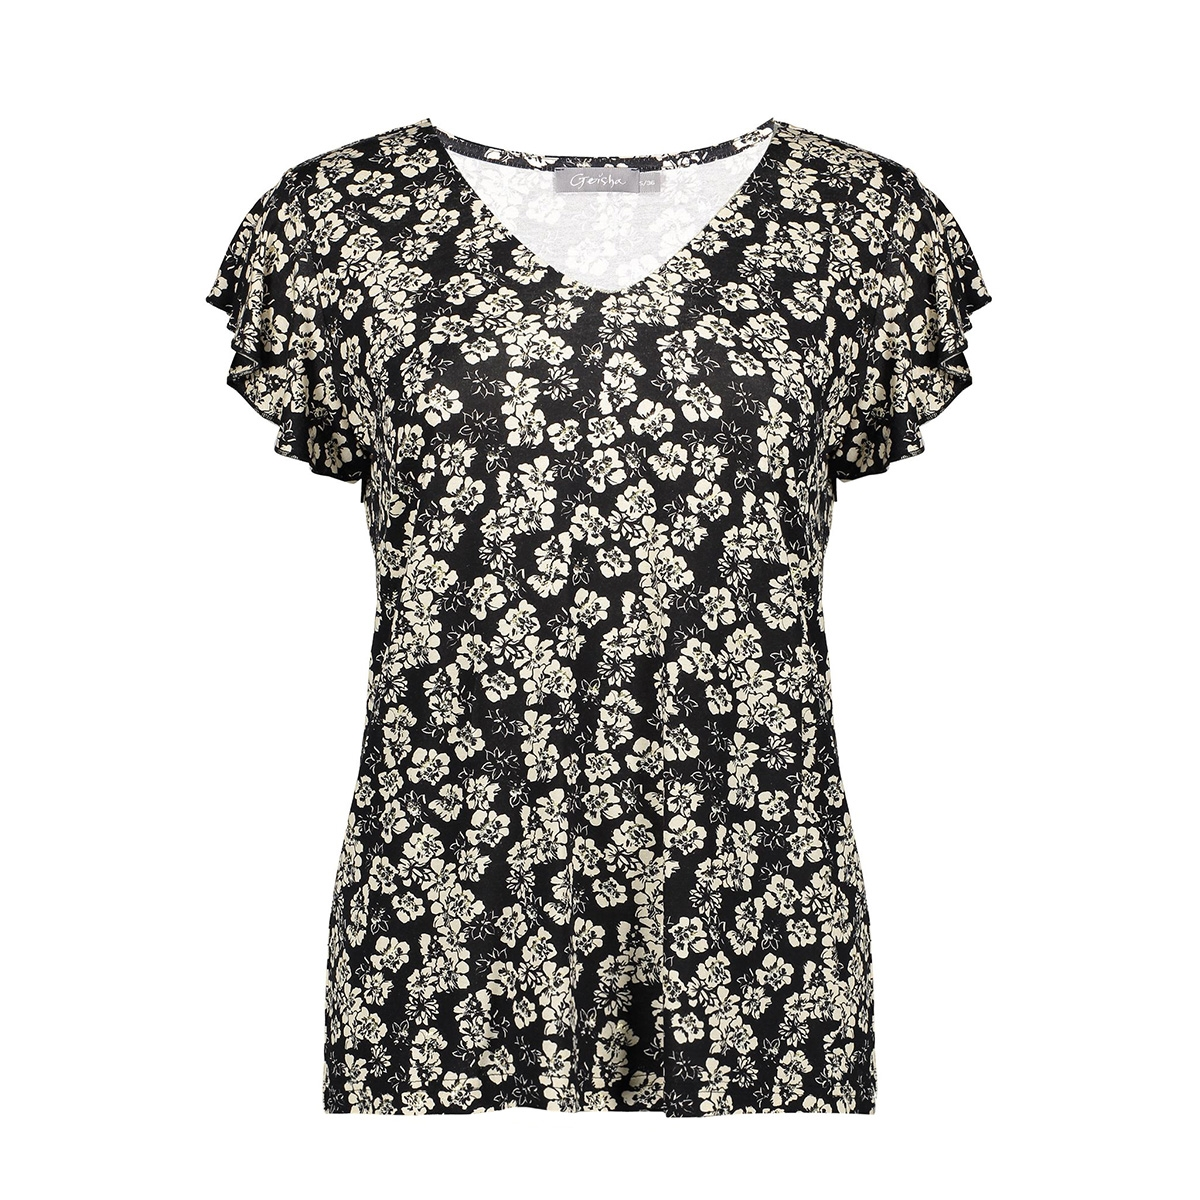 top v neck gold ruffle sleeve 03454 20 geisha t-shirt black/off-white/gold combi